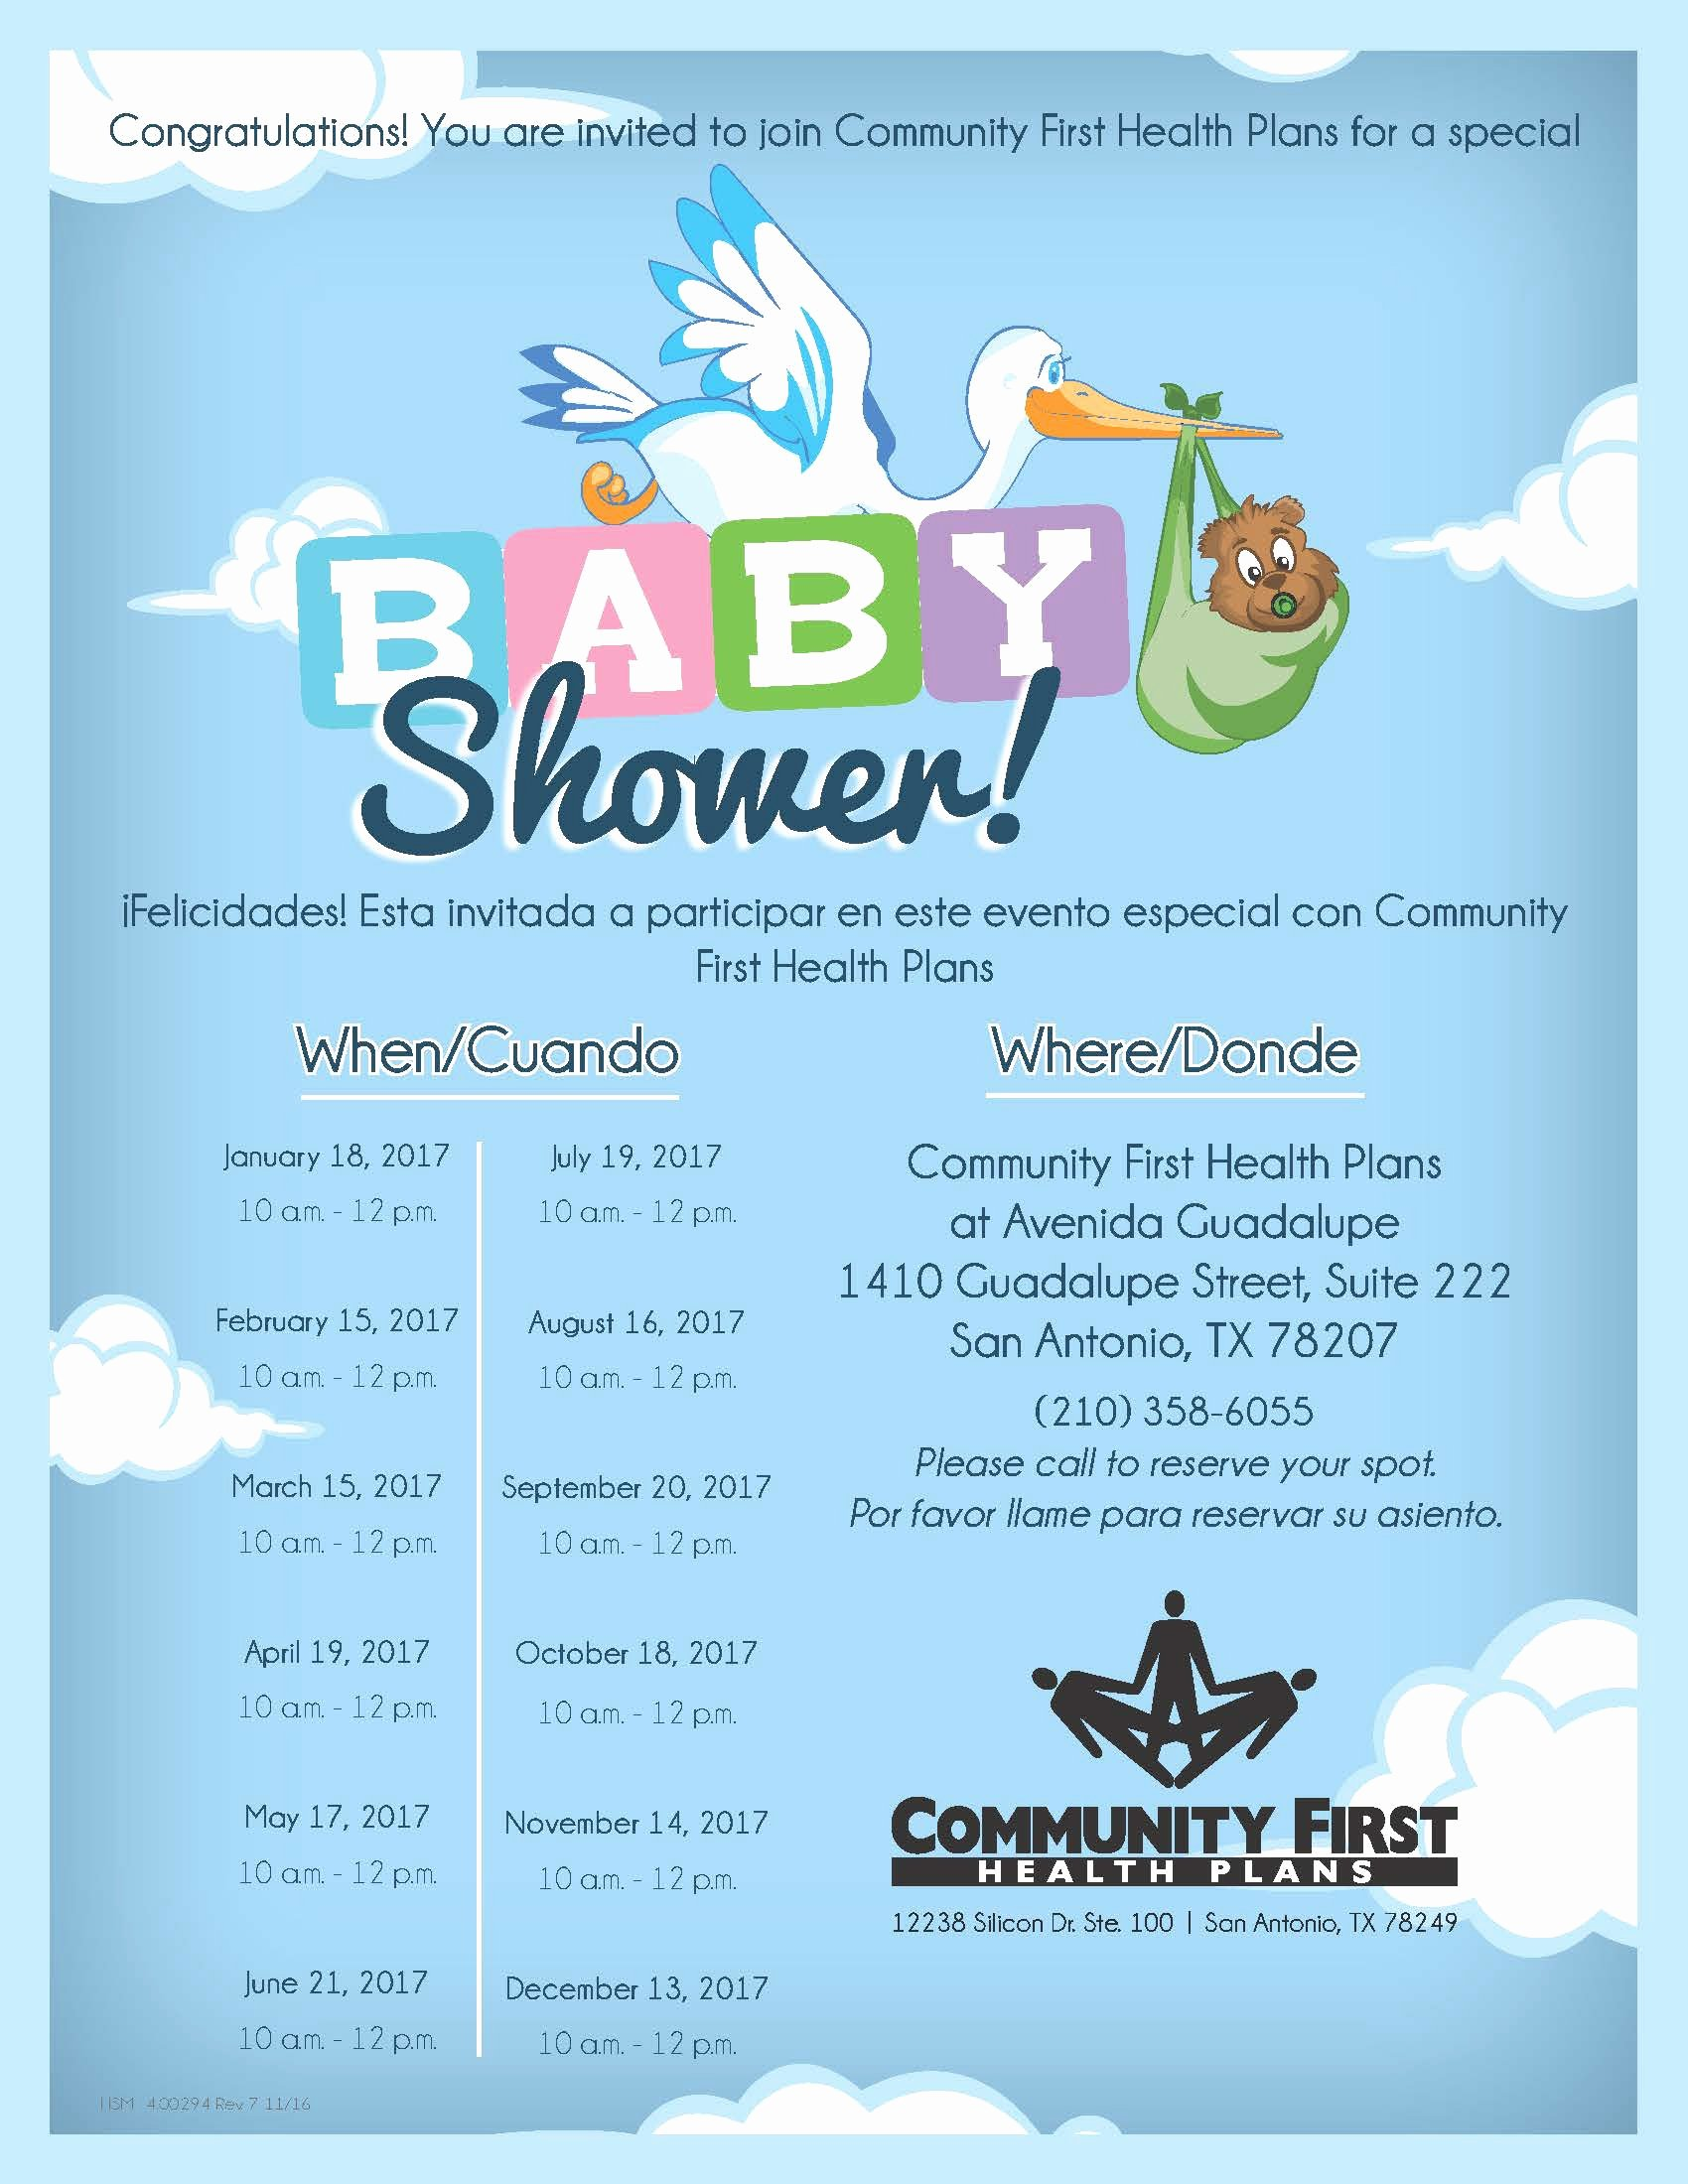 Baby Shower Program Template Unique events Munity First Health Plan